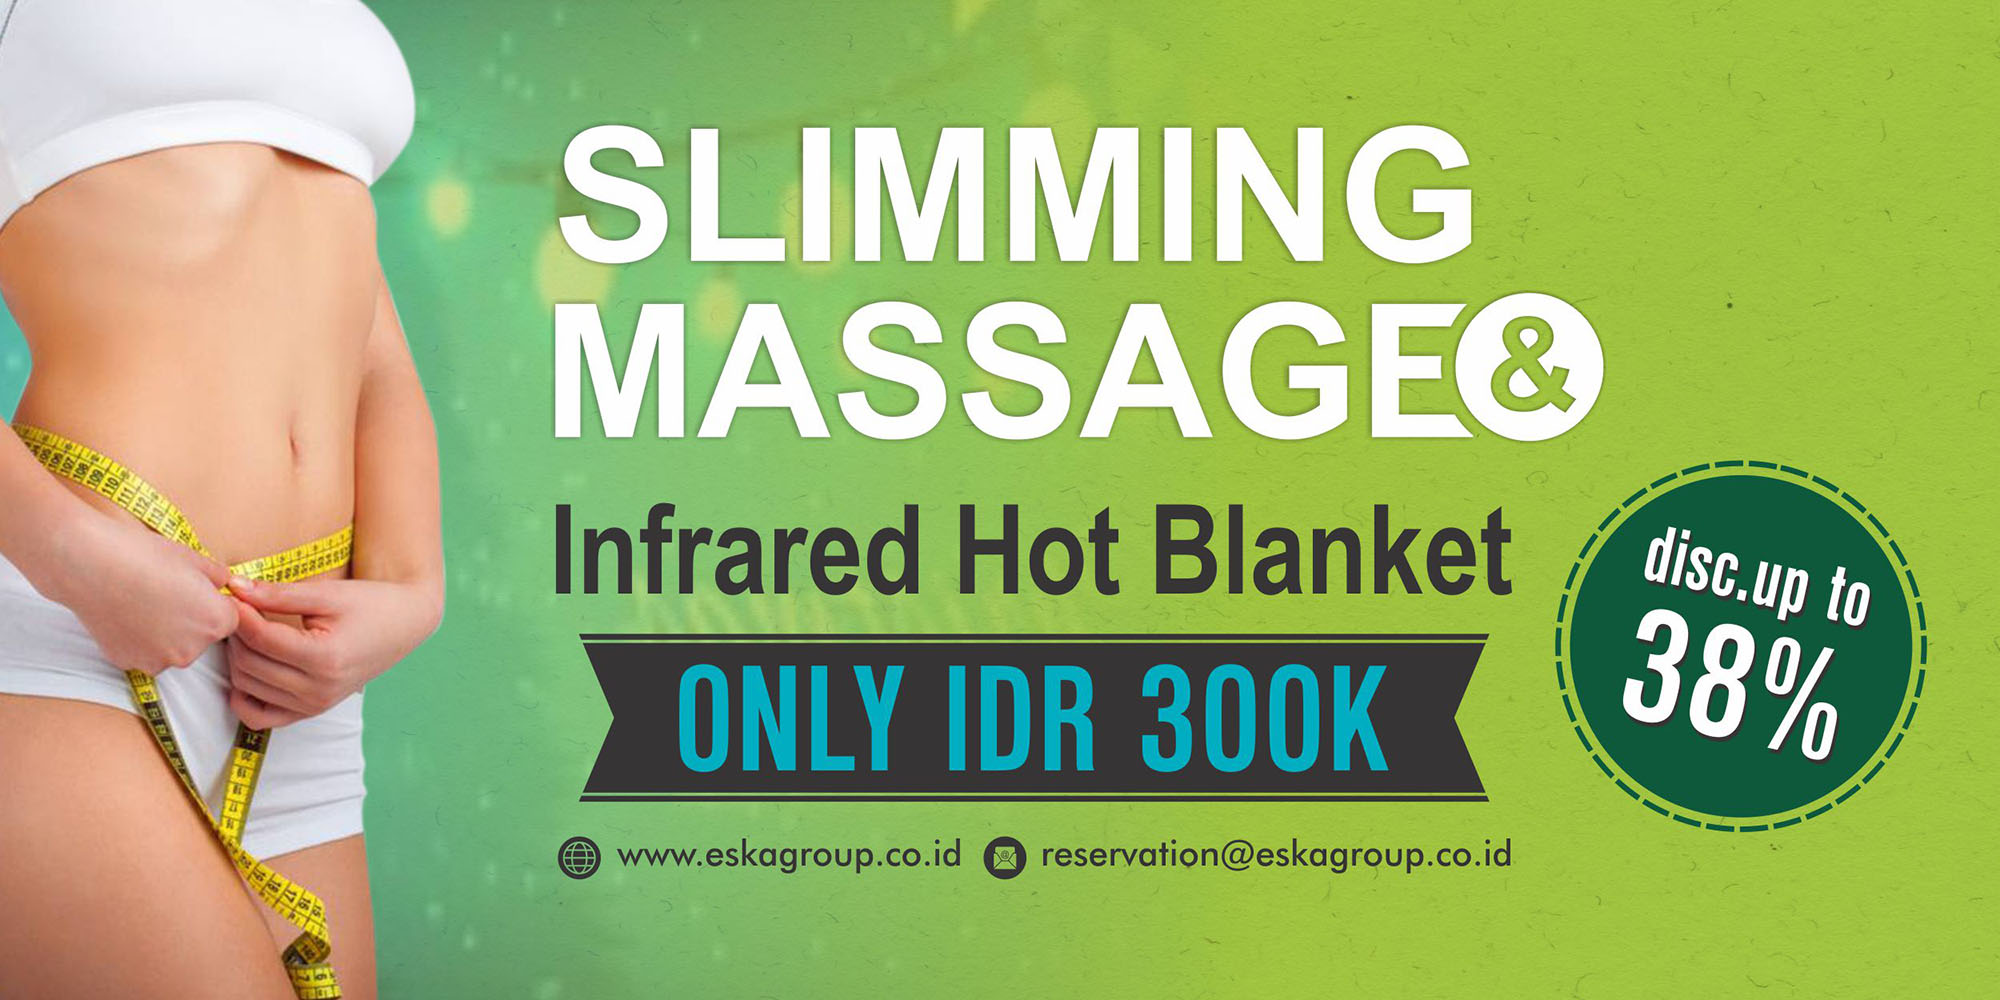 eska group batam 1801-promo-slimming-massage-infrared-hot-blanket-slider